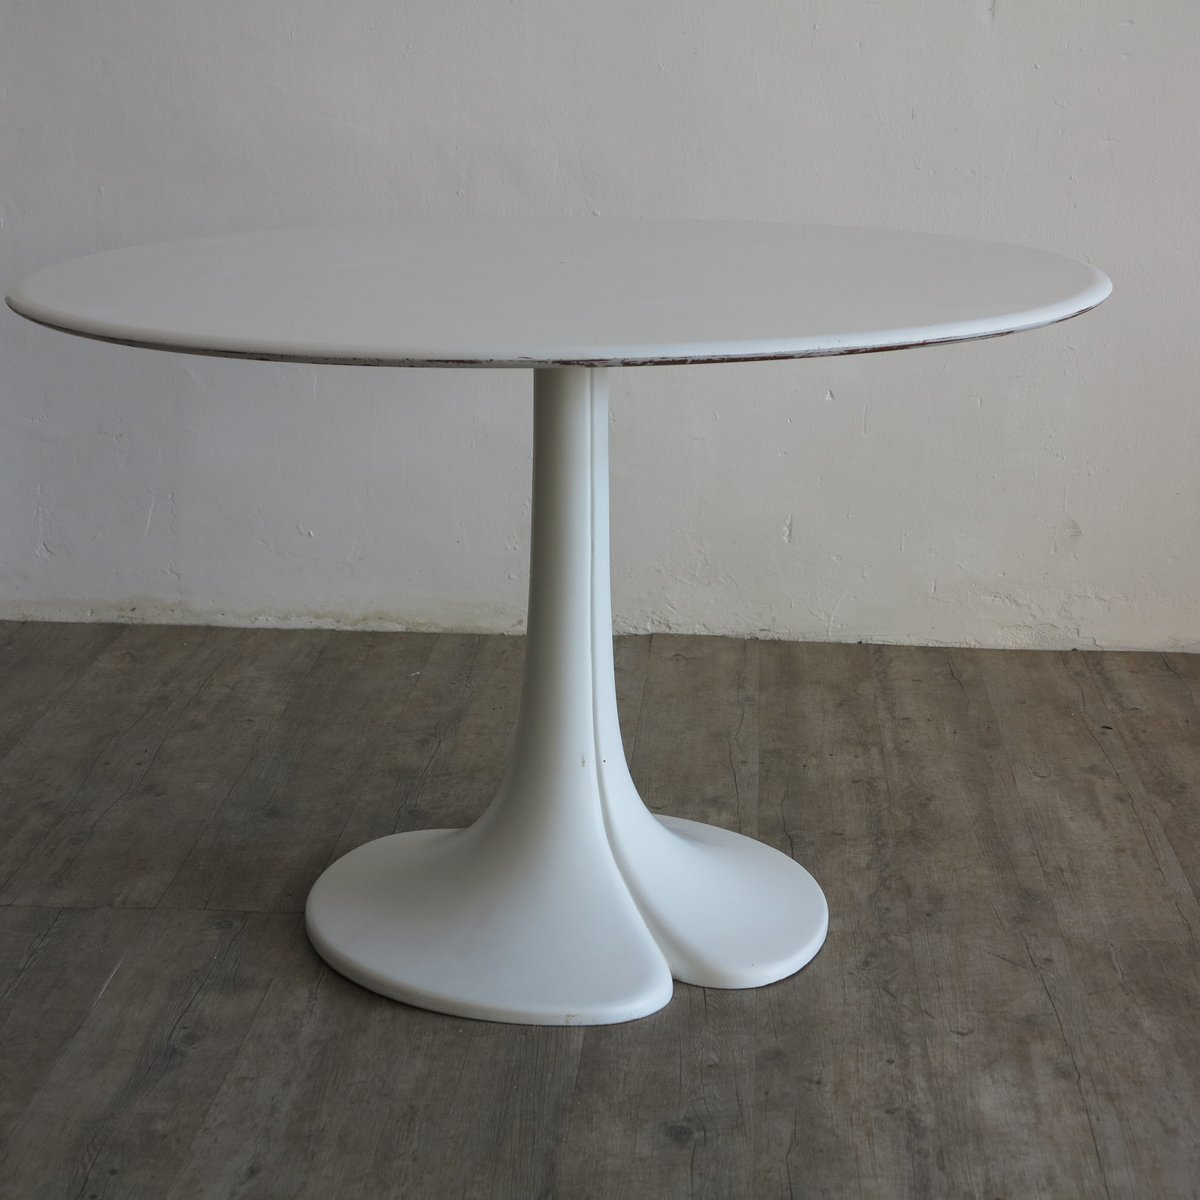 Vintage French Wood & Plastic Coffee Table, 1960s For Sale